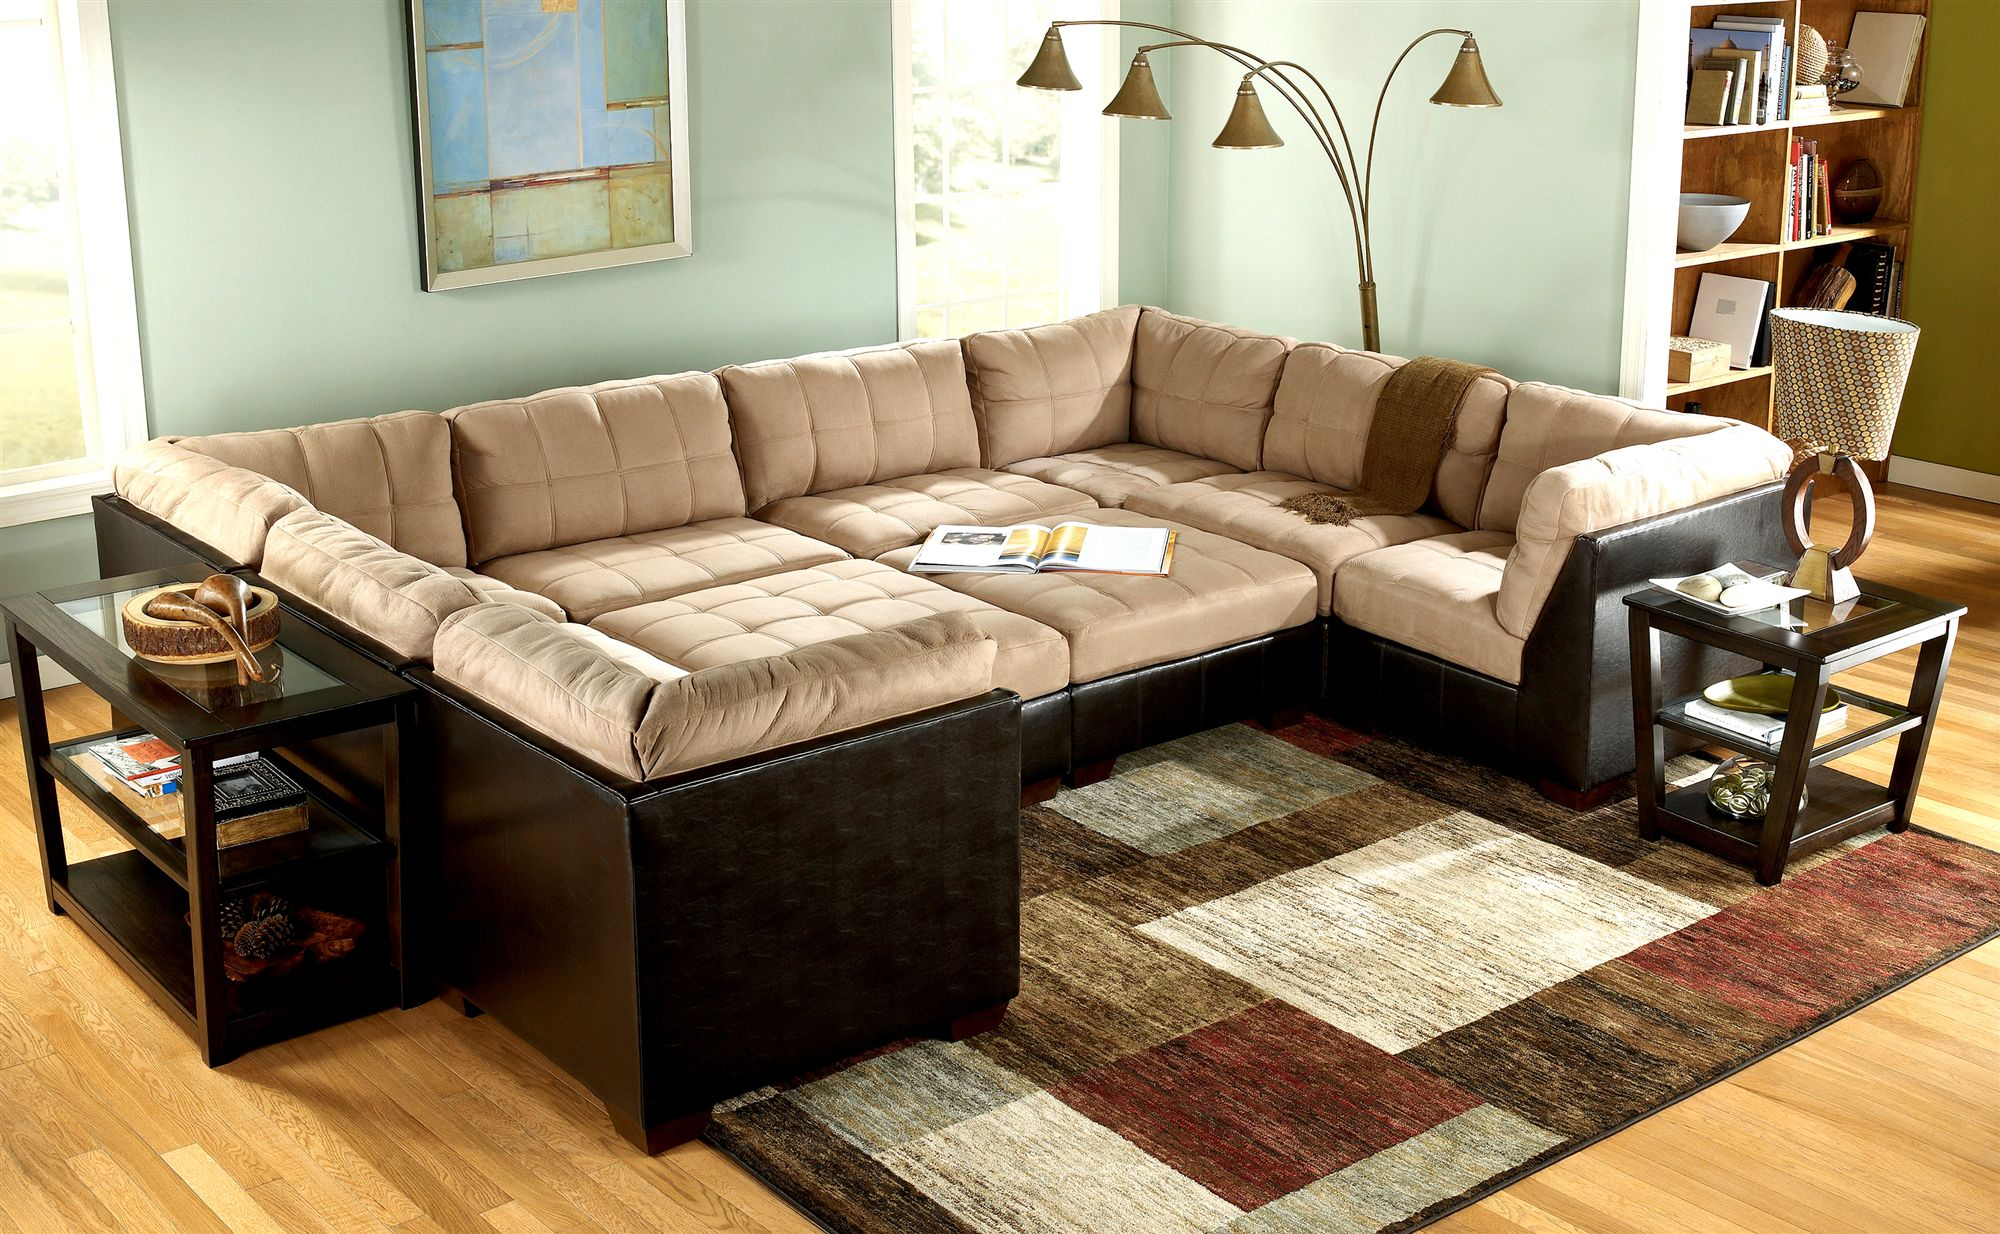 Chair Mesmerizing Affordable Sectionals With Lovely Leather with Affordable Living Room Sets For Sale